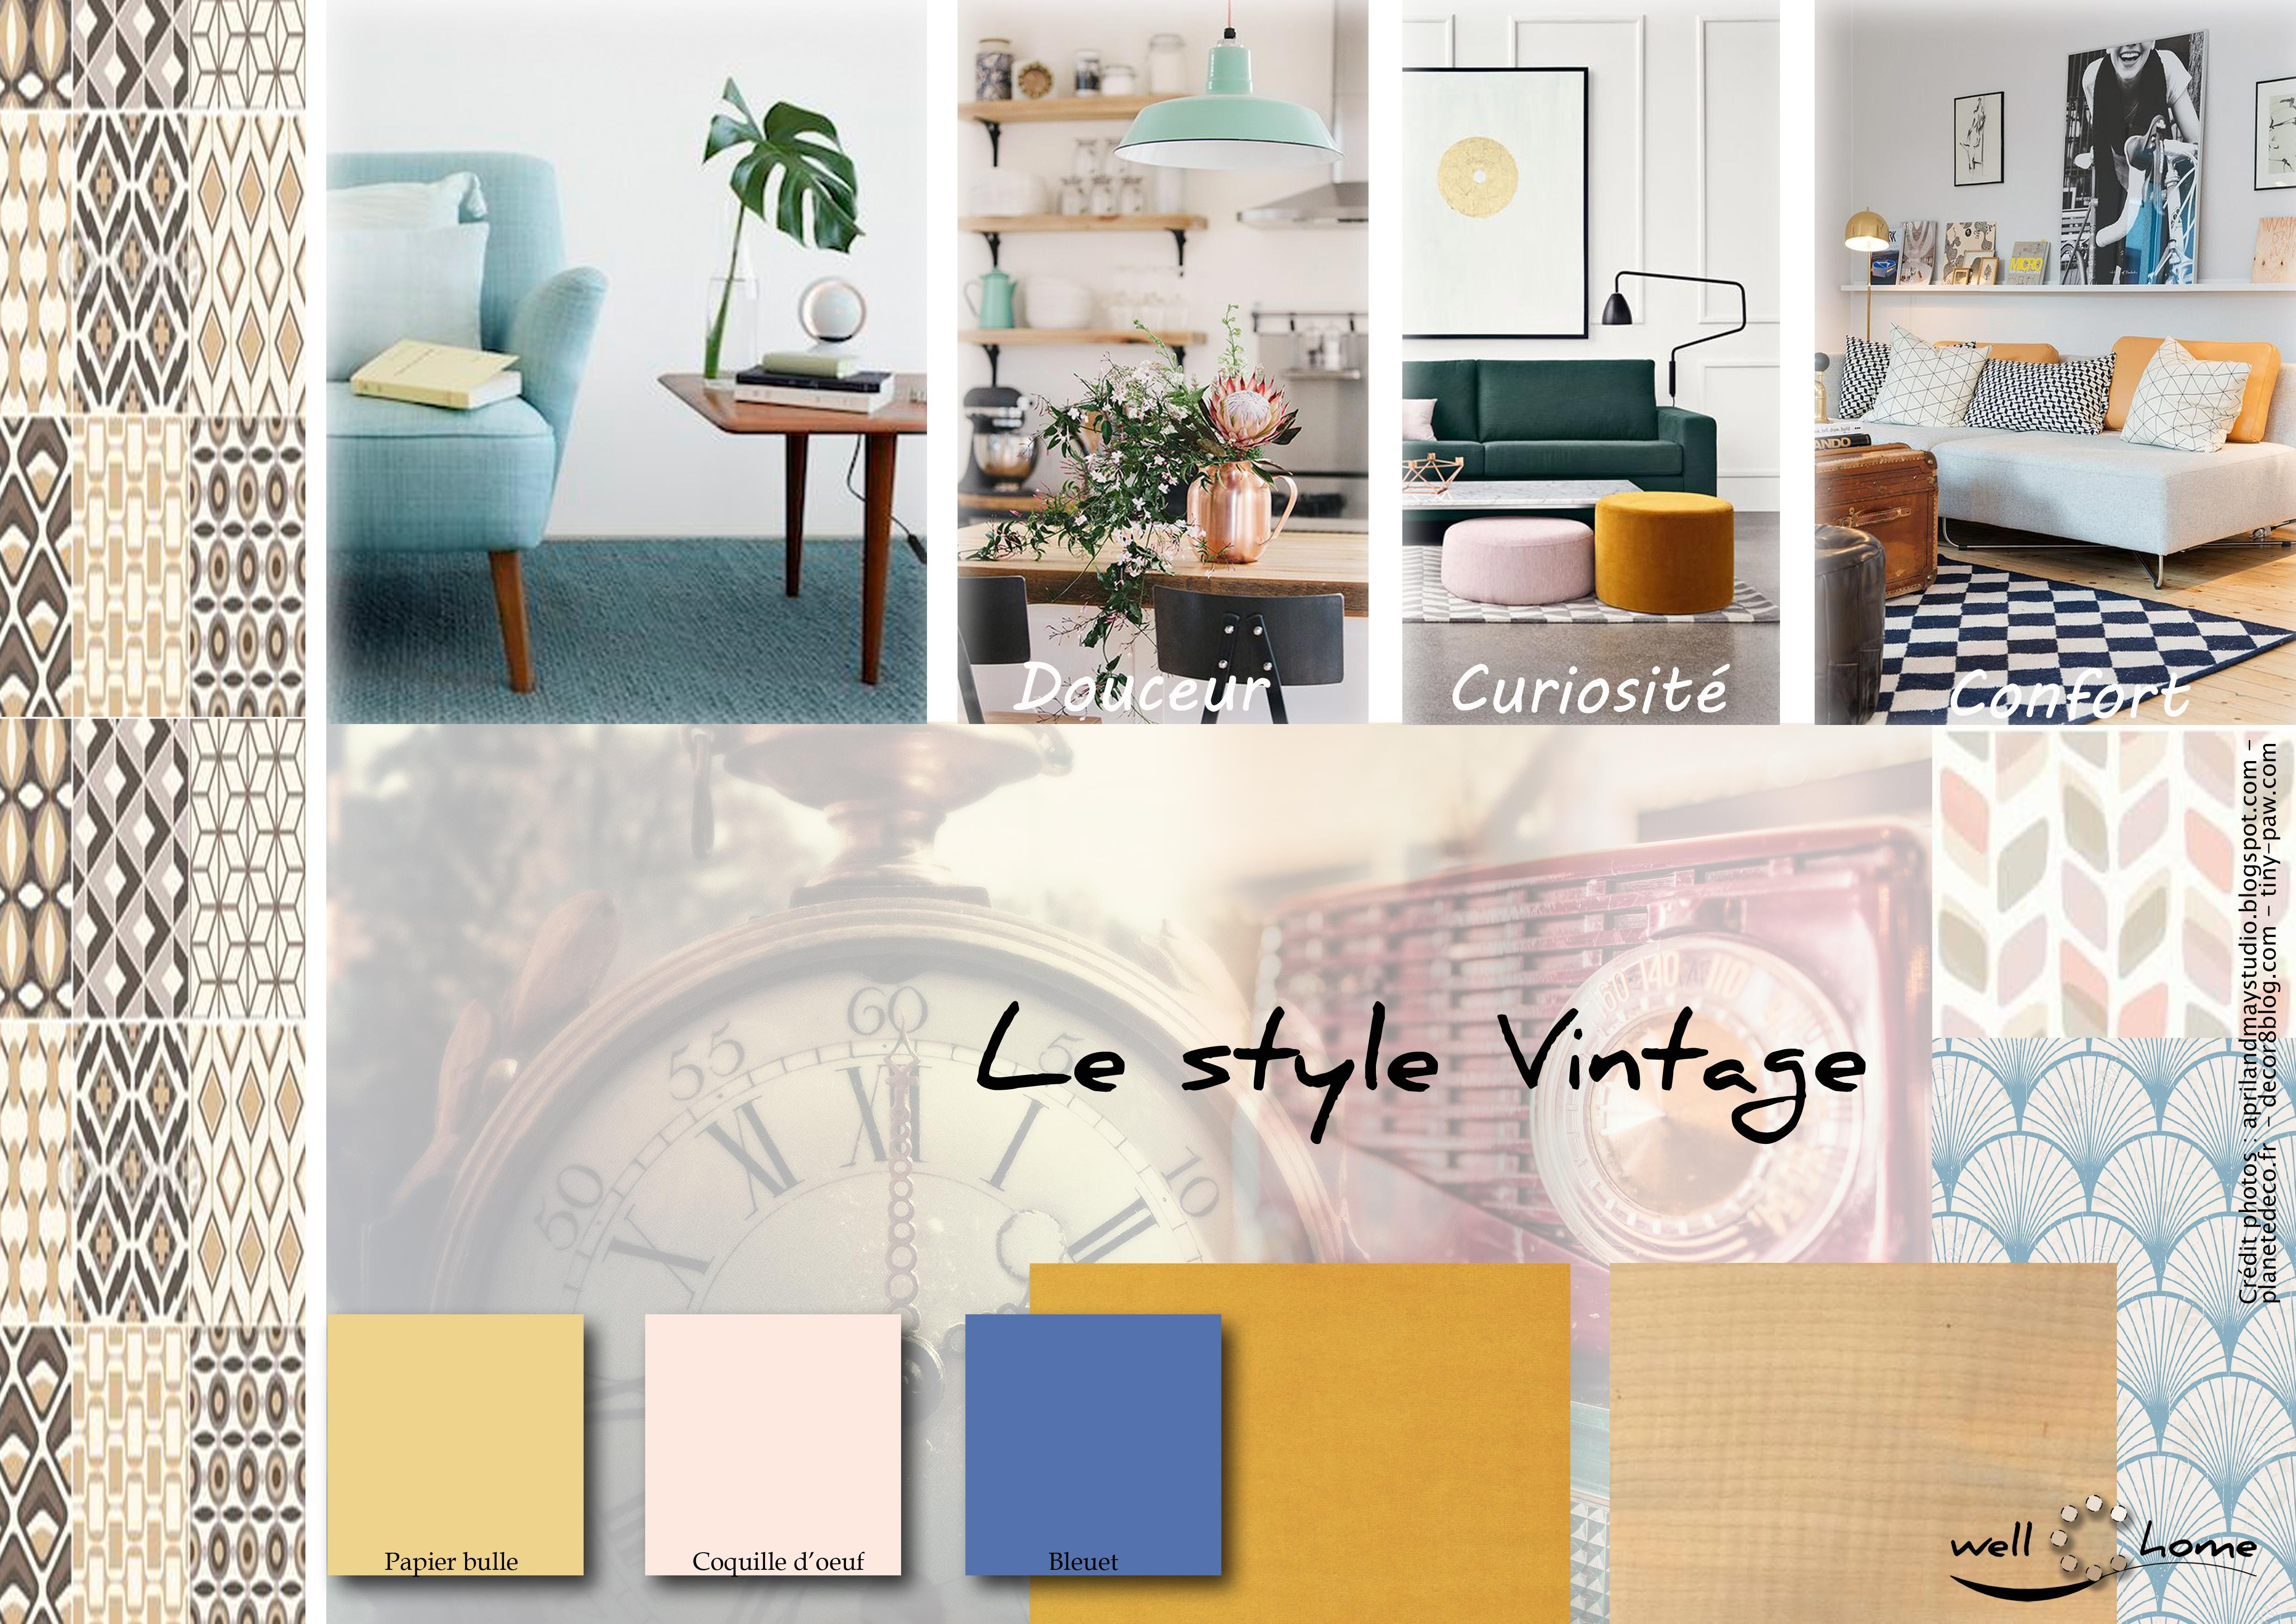 Moodboard d co planche d 39 ambiance tendance style vintage r alisation well c home planche - Planche d ambiance ...